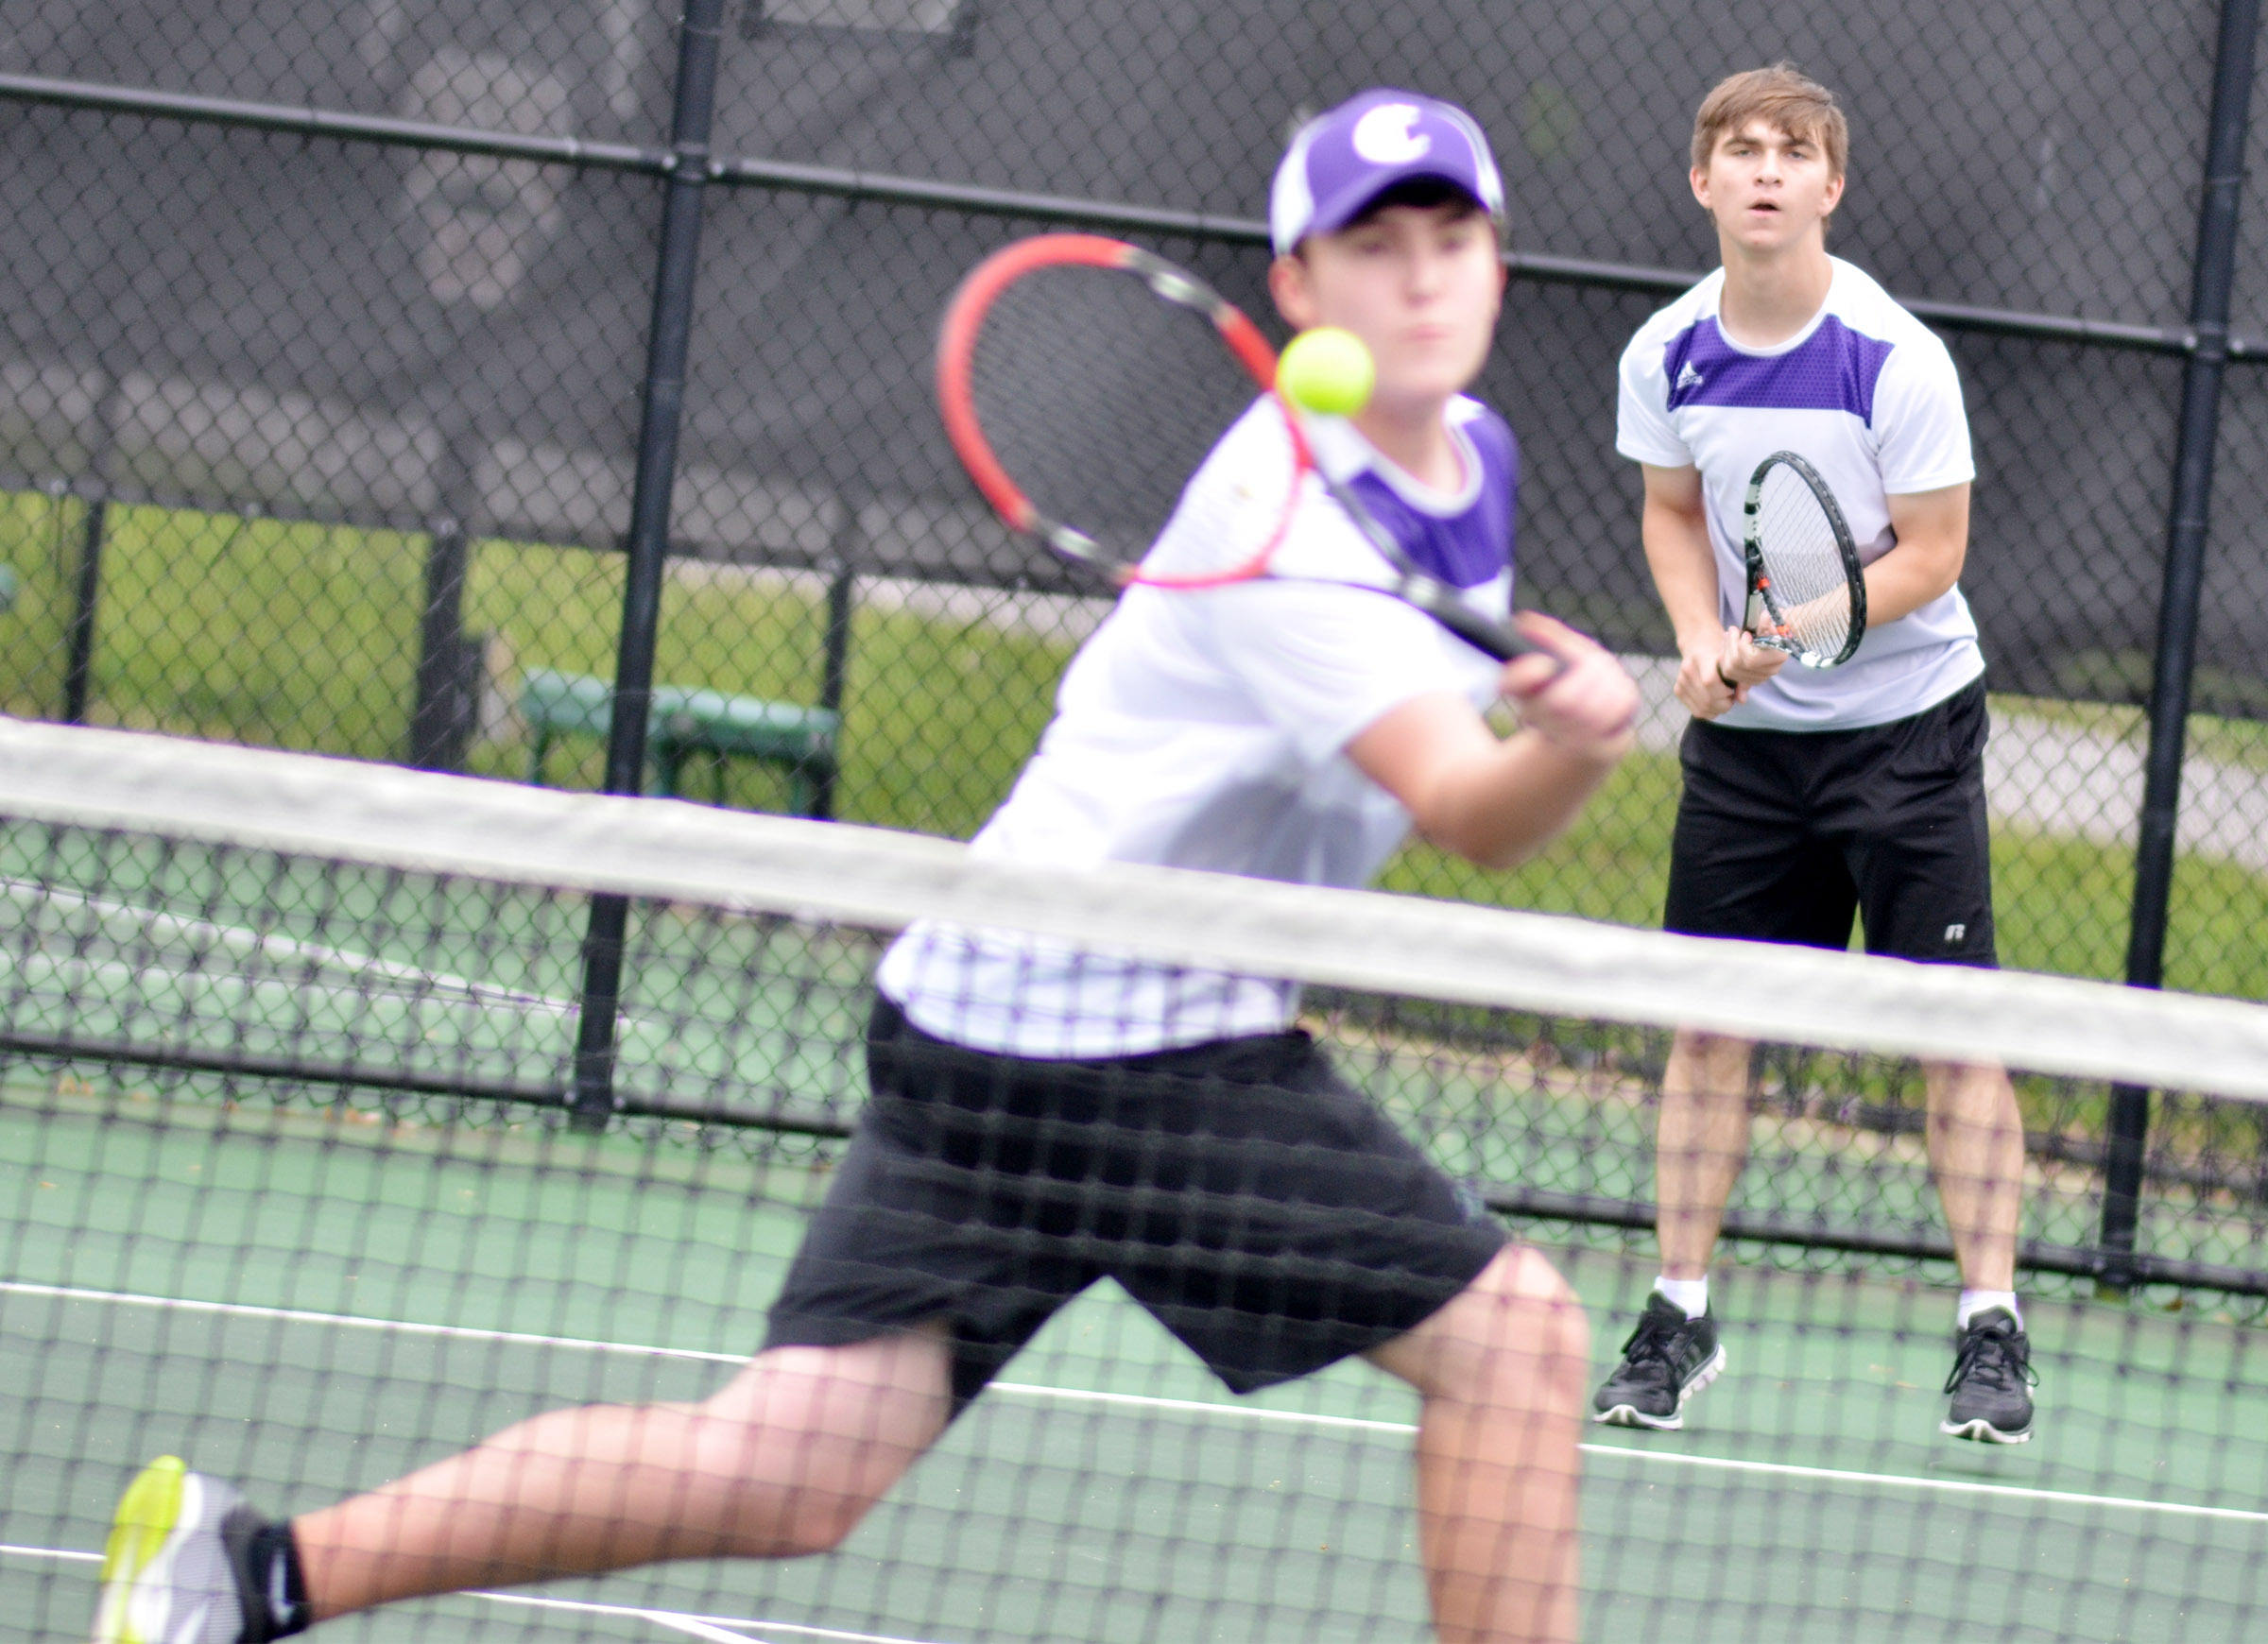 CHS senior Zack Settle hits the ball as doubles partner junior Cass Kidwell watches.